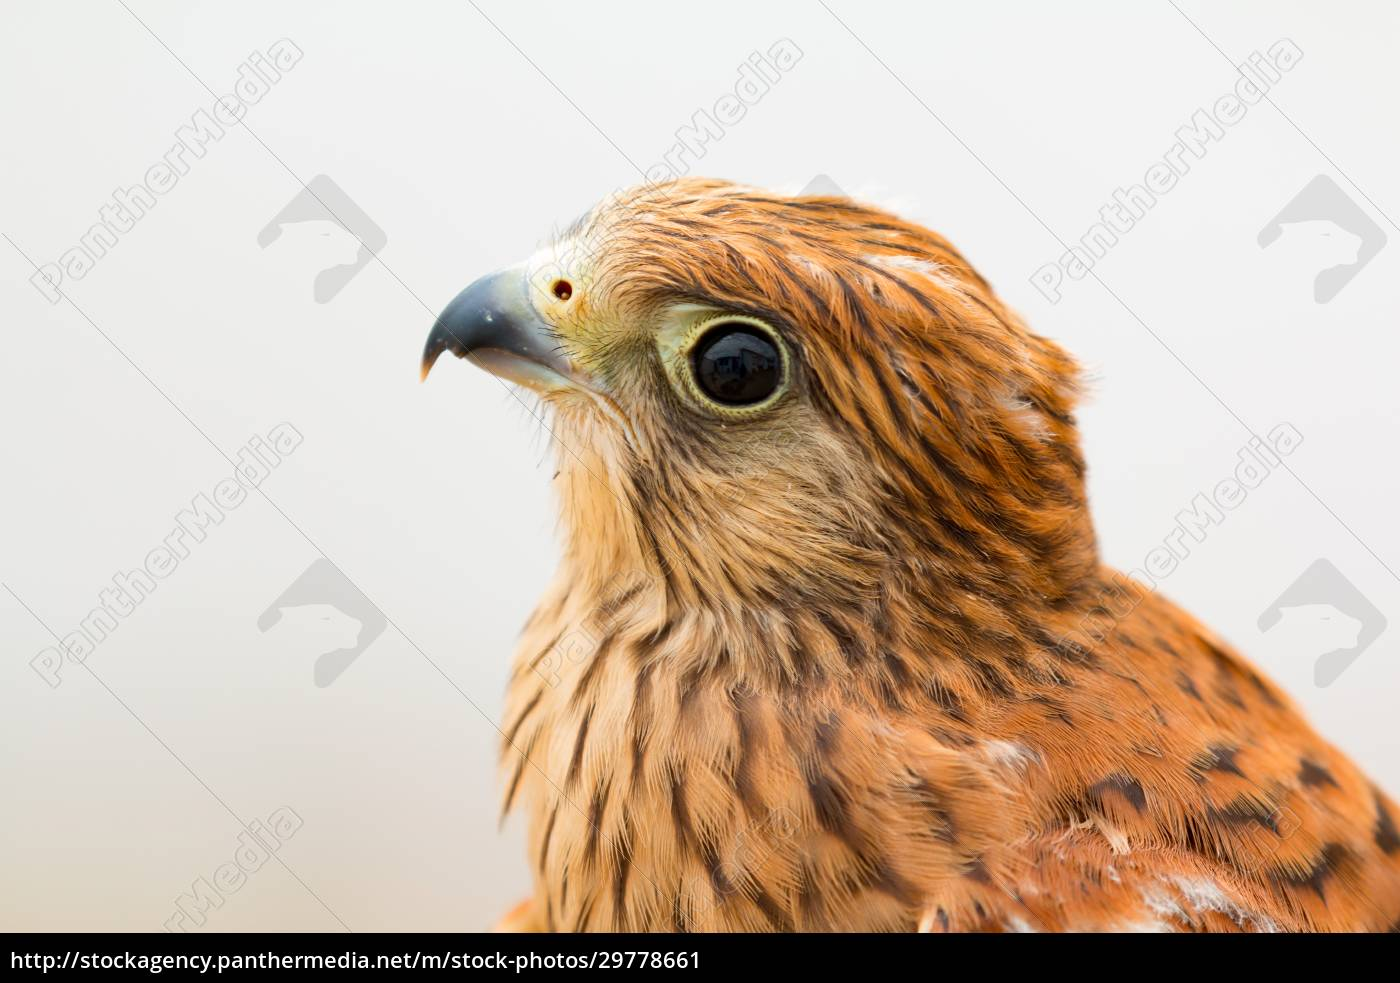 young, kestrel, with, a, beautiful, plumage - 29778661